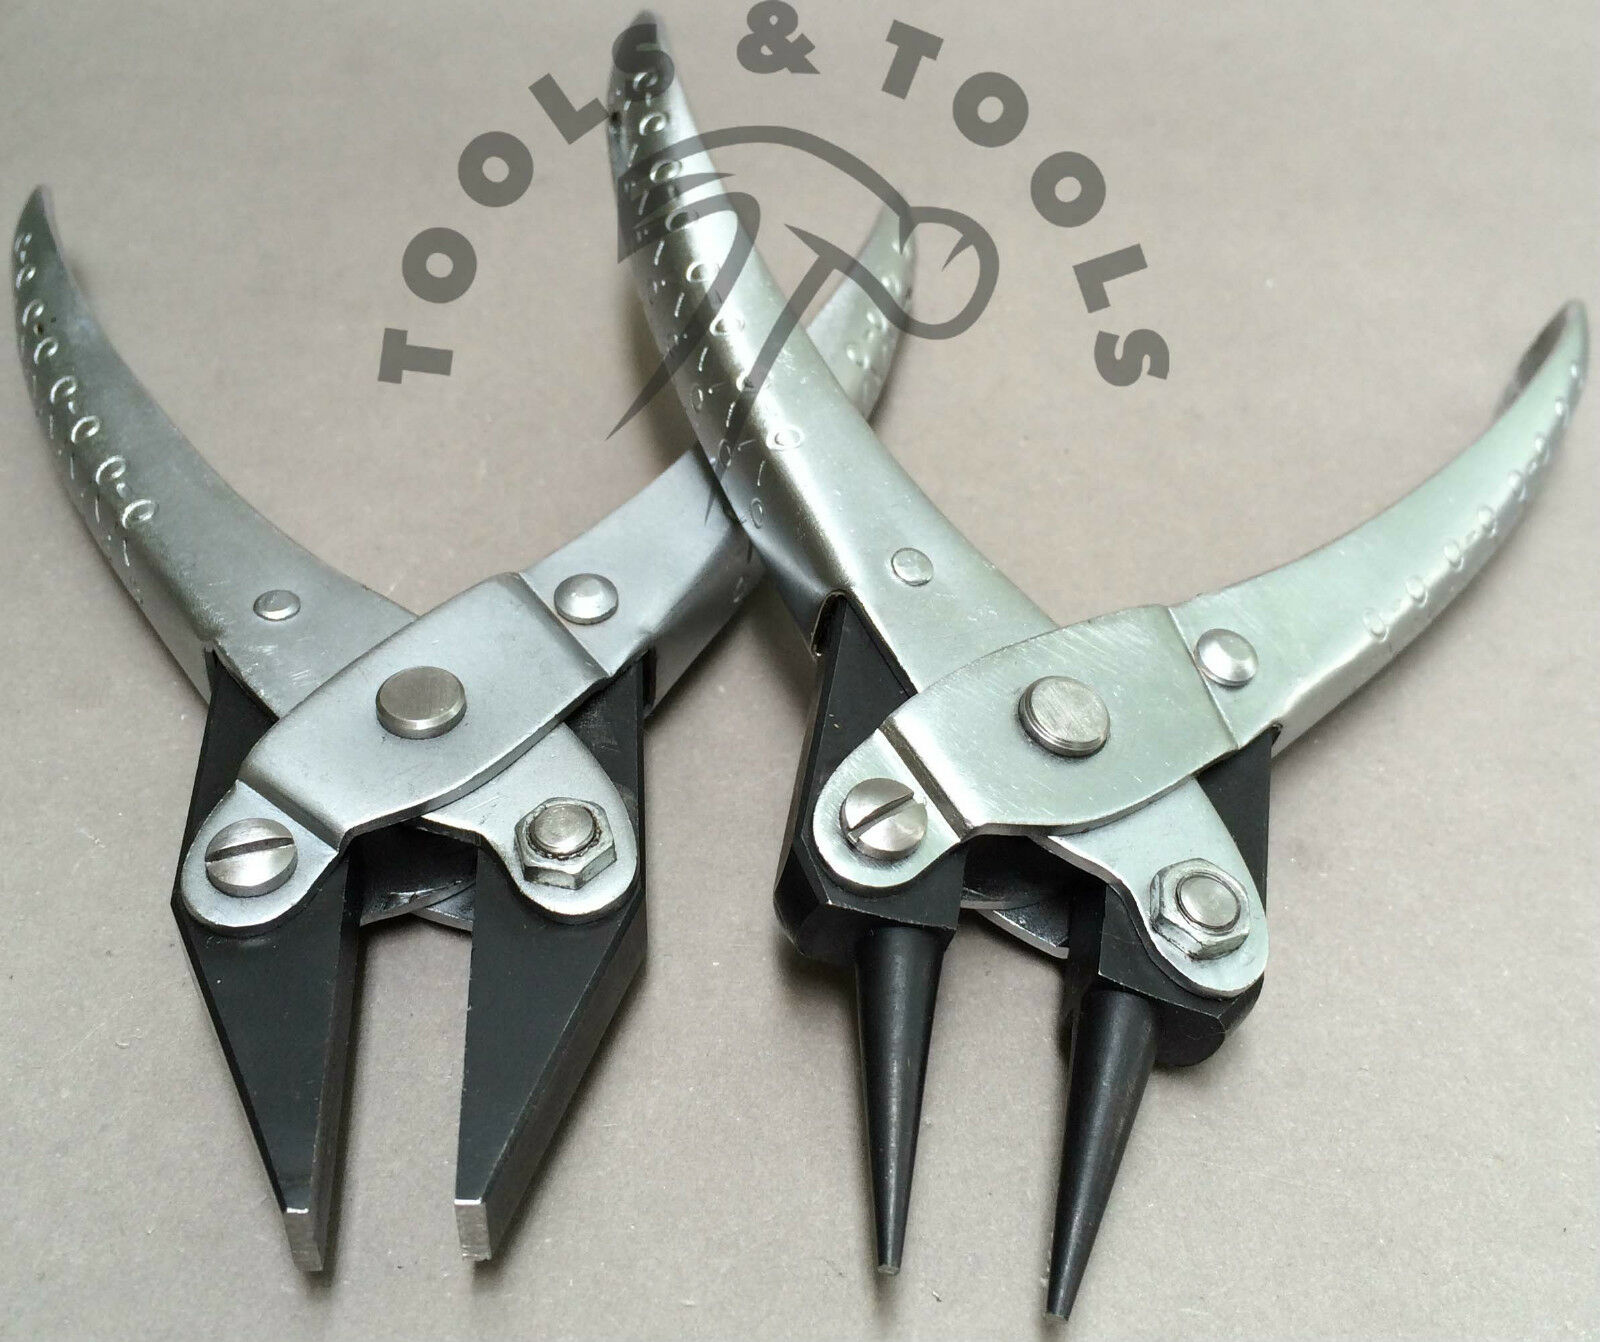 2 Piece Parallel Action Smooth Flat Nose /& Brass jaws Pliers Jewelry Wire Crafts